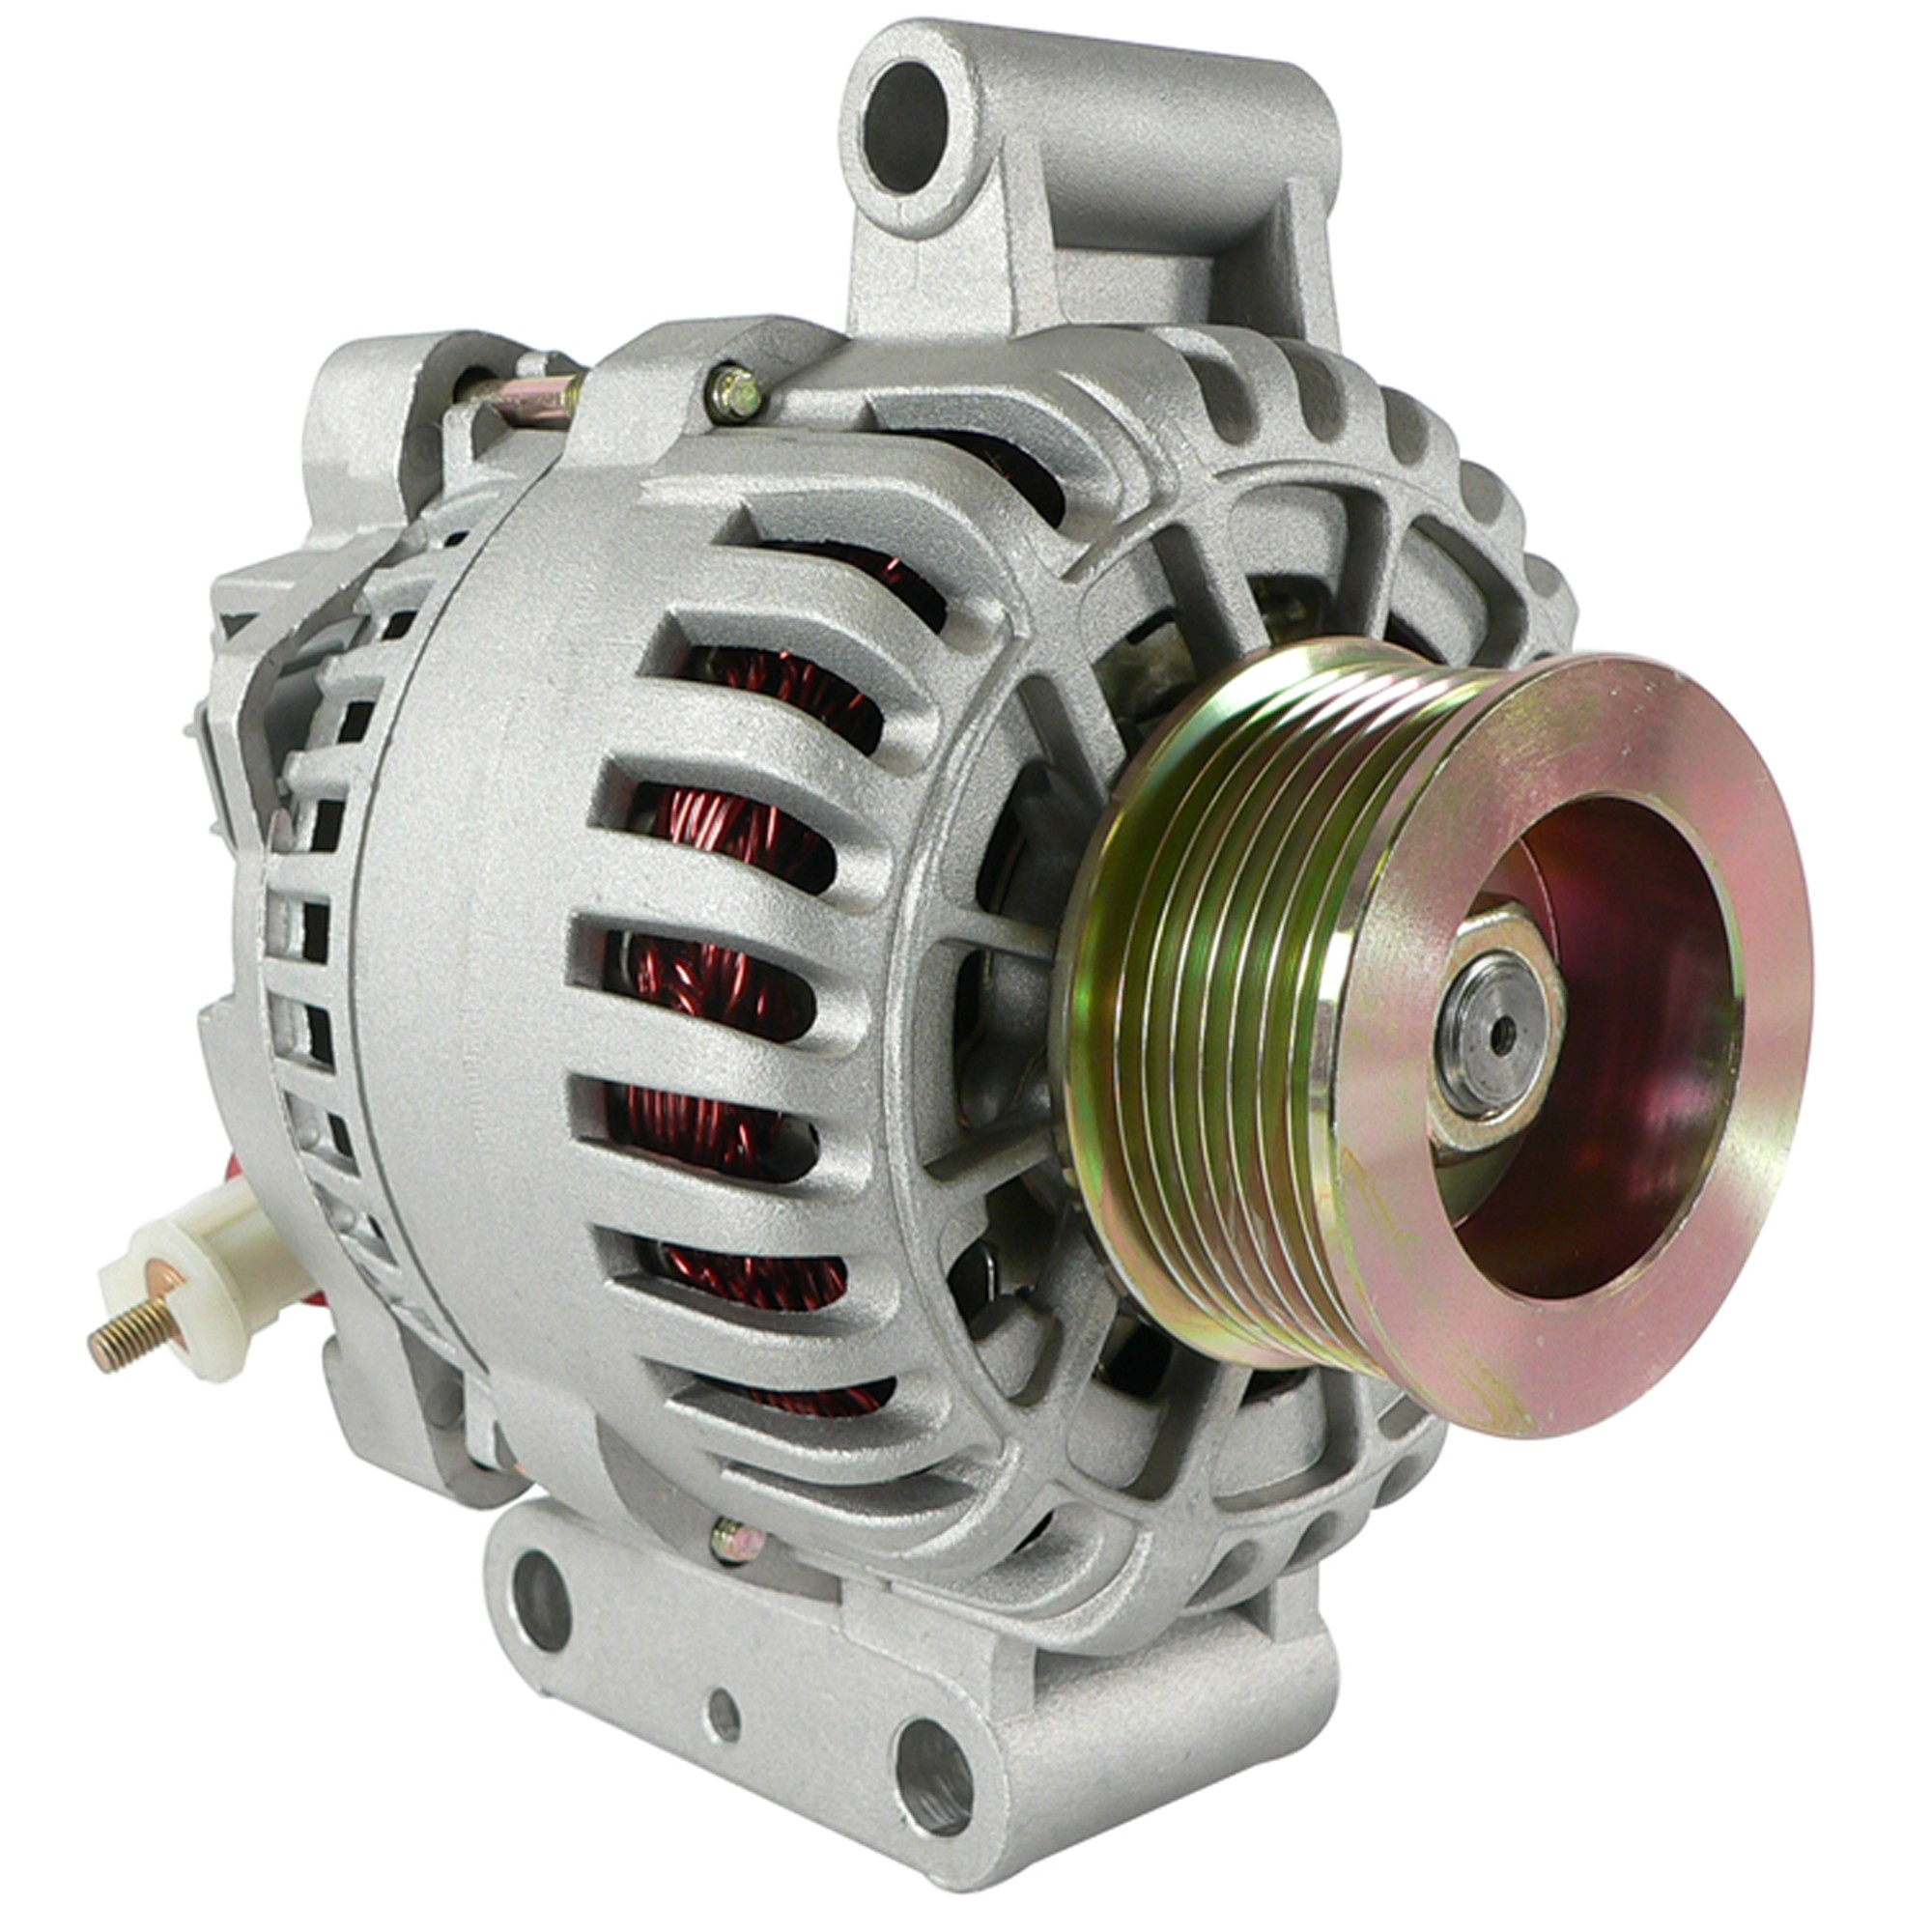 NEW ALTERNATOR FORD F SERIES PICK UP 2003-05 6.0L